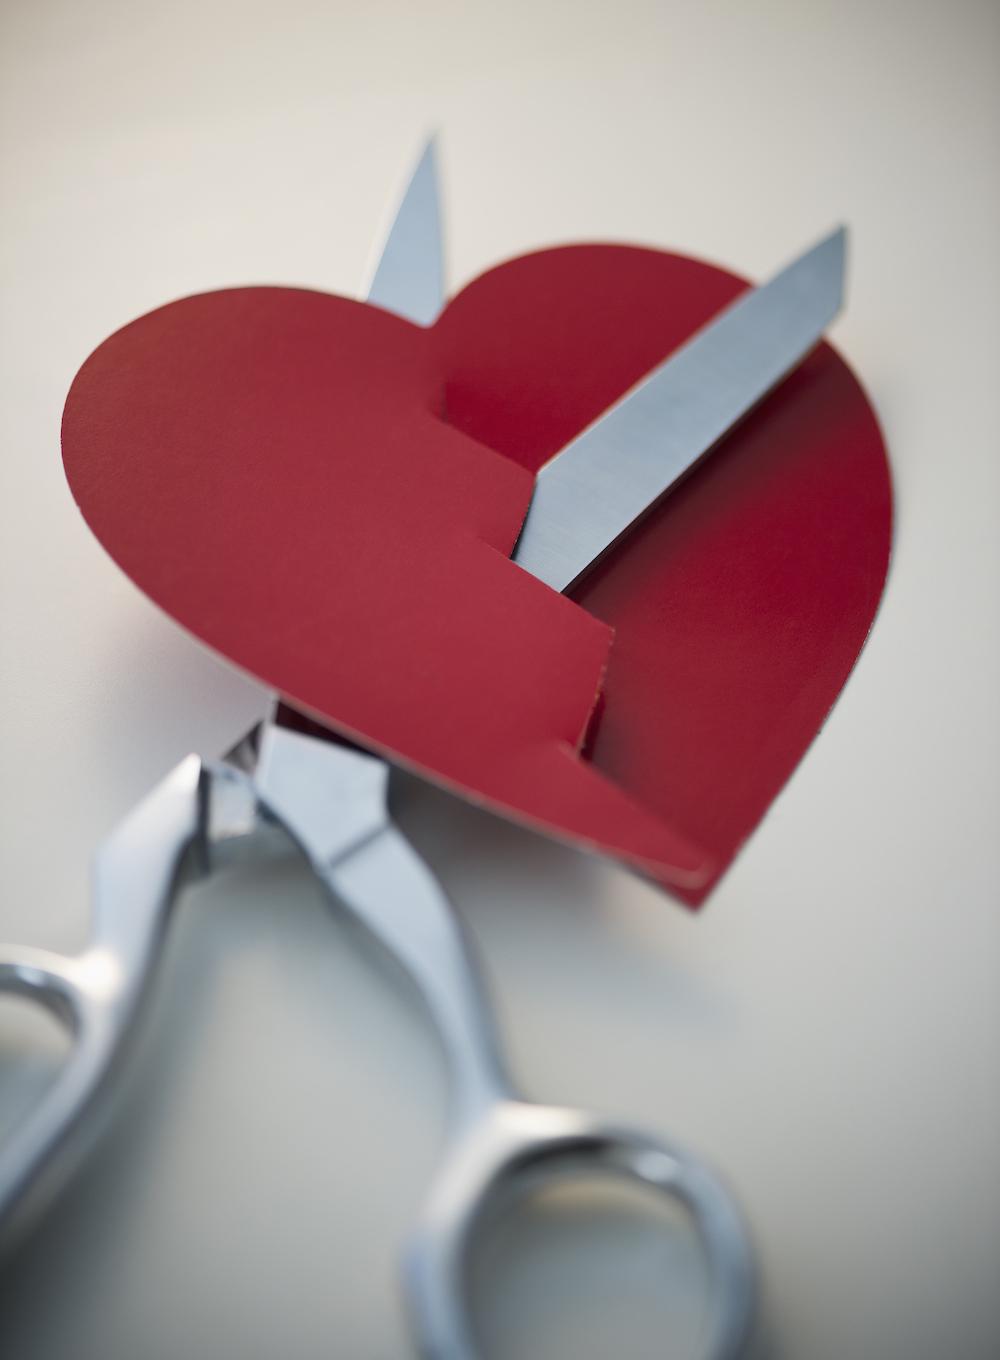 How an Unhappy Marriage Could Literally Break Your Heart